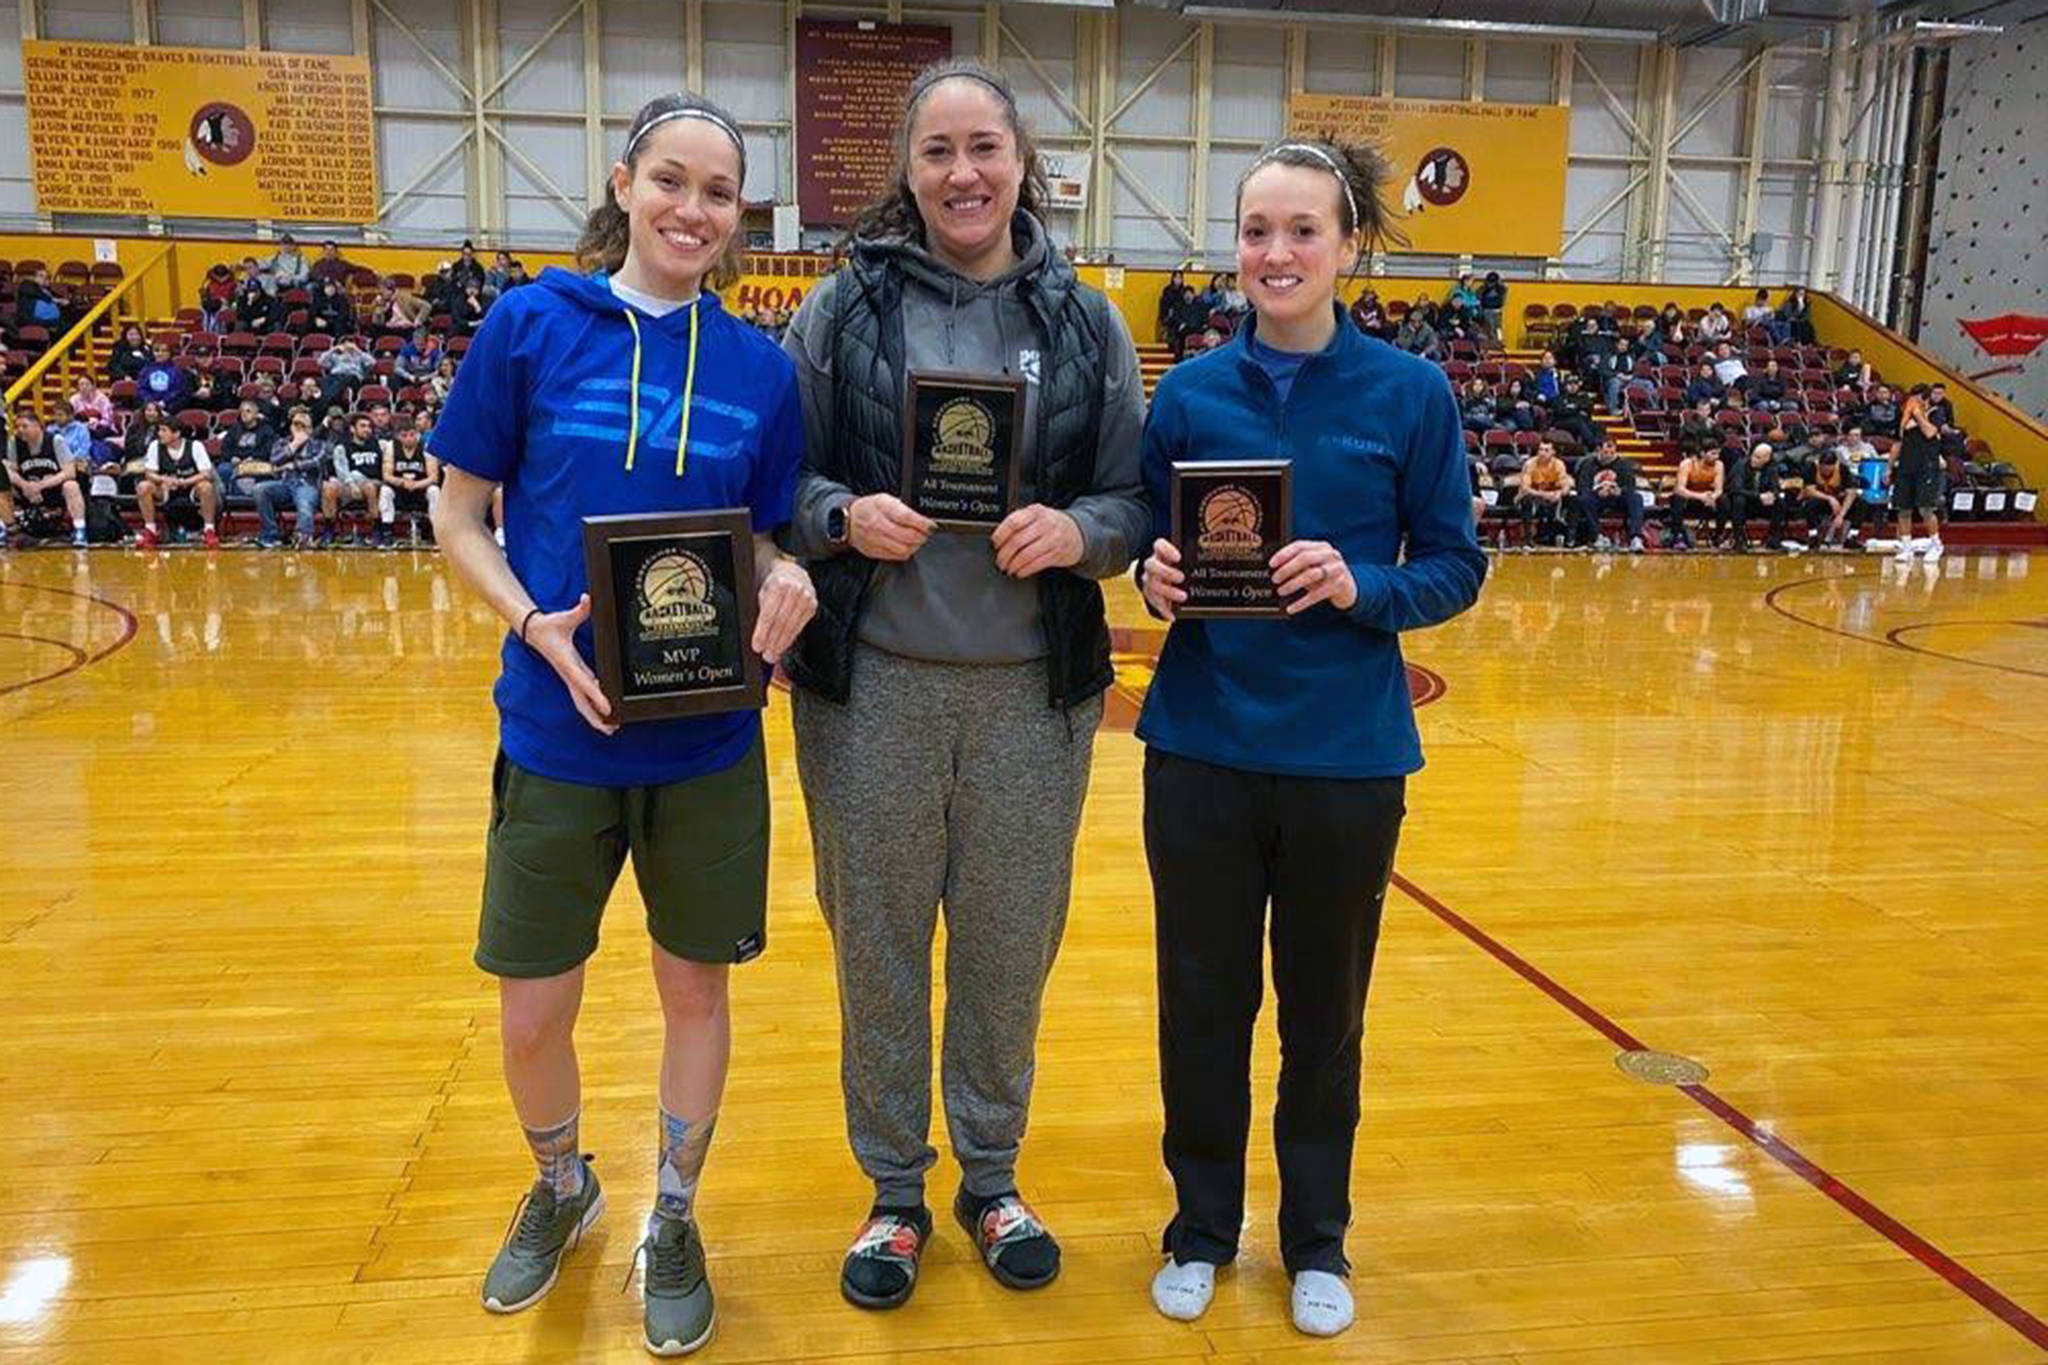 Mariah Simpkins, Danielle Larson and Nani Weimer hold their all-tournament plaques after the Mt. Edgecumbe Invitational. (Courtesy Photo | Juneau Monstarz)